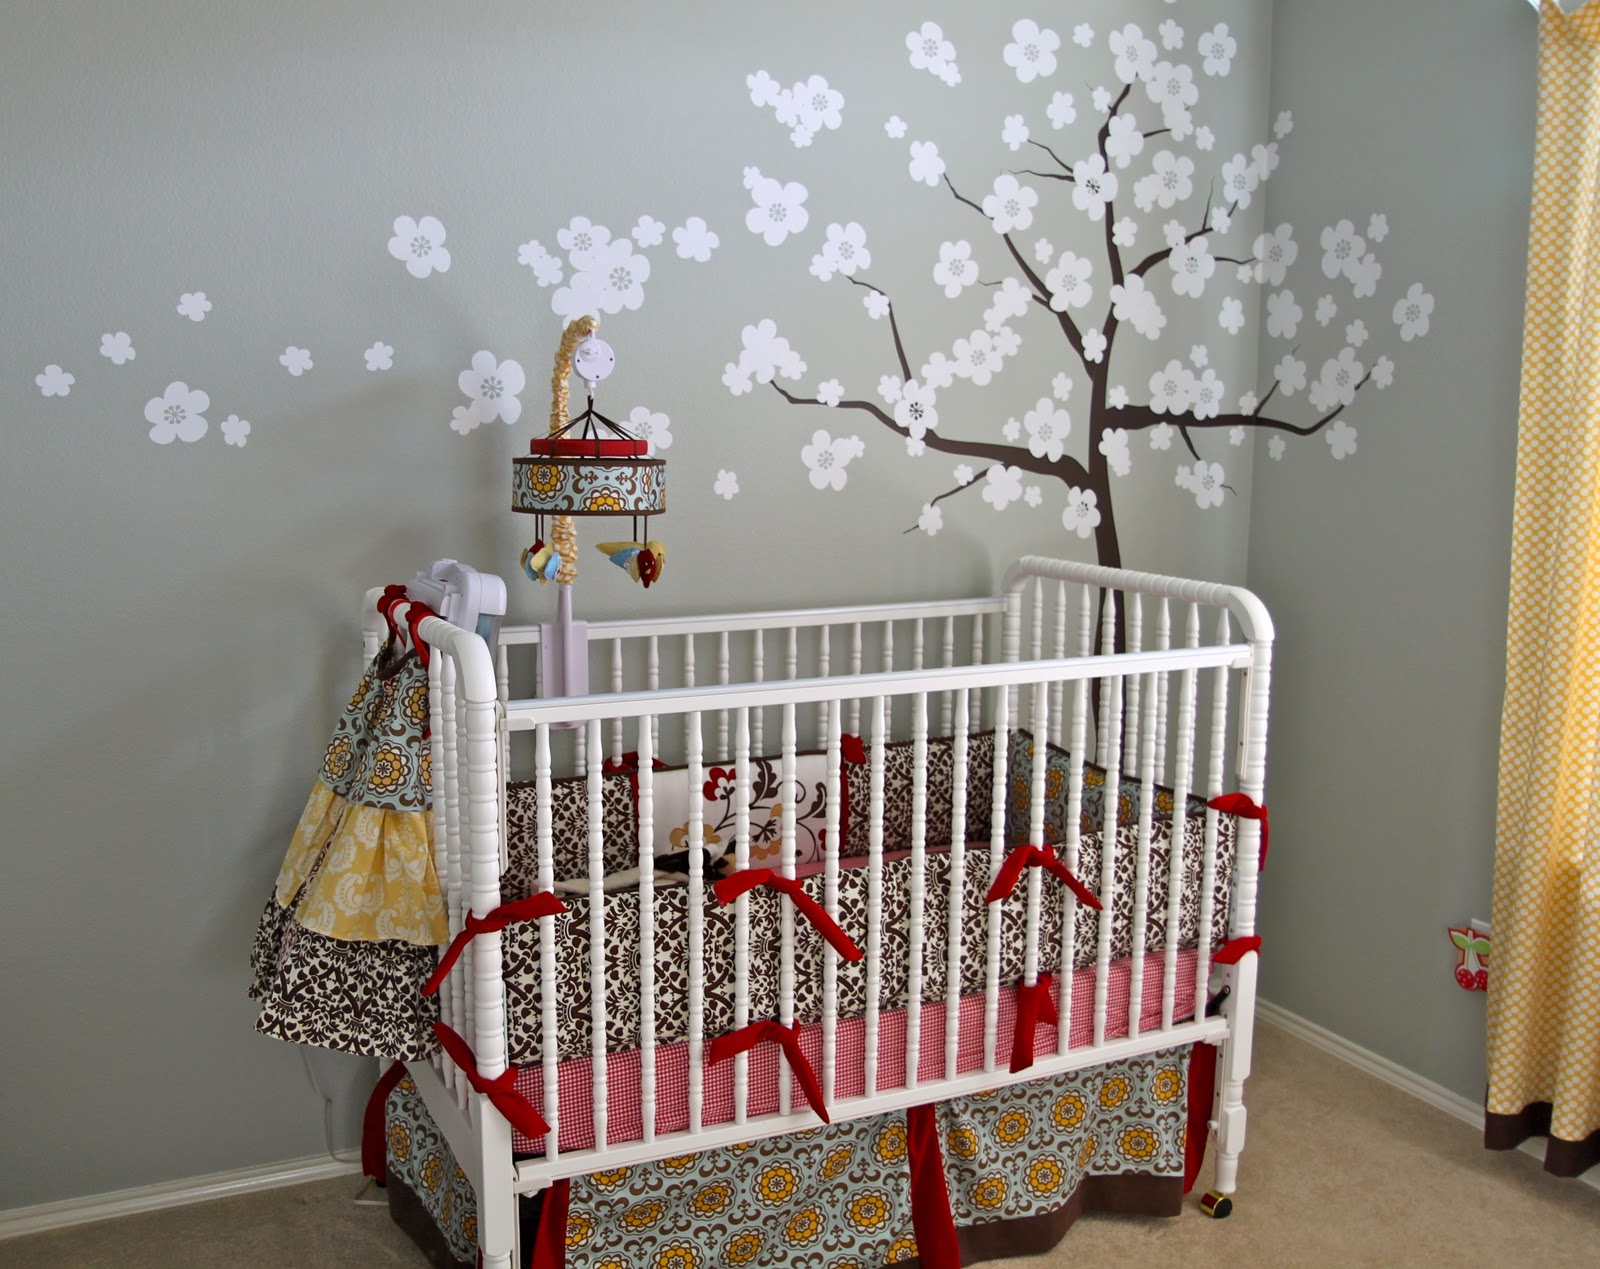 Baby nursery it 39 s quirky and so cute design dazzle - Room decoration for baby boy ...